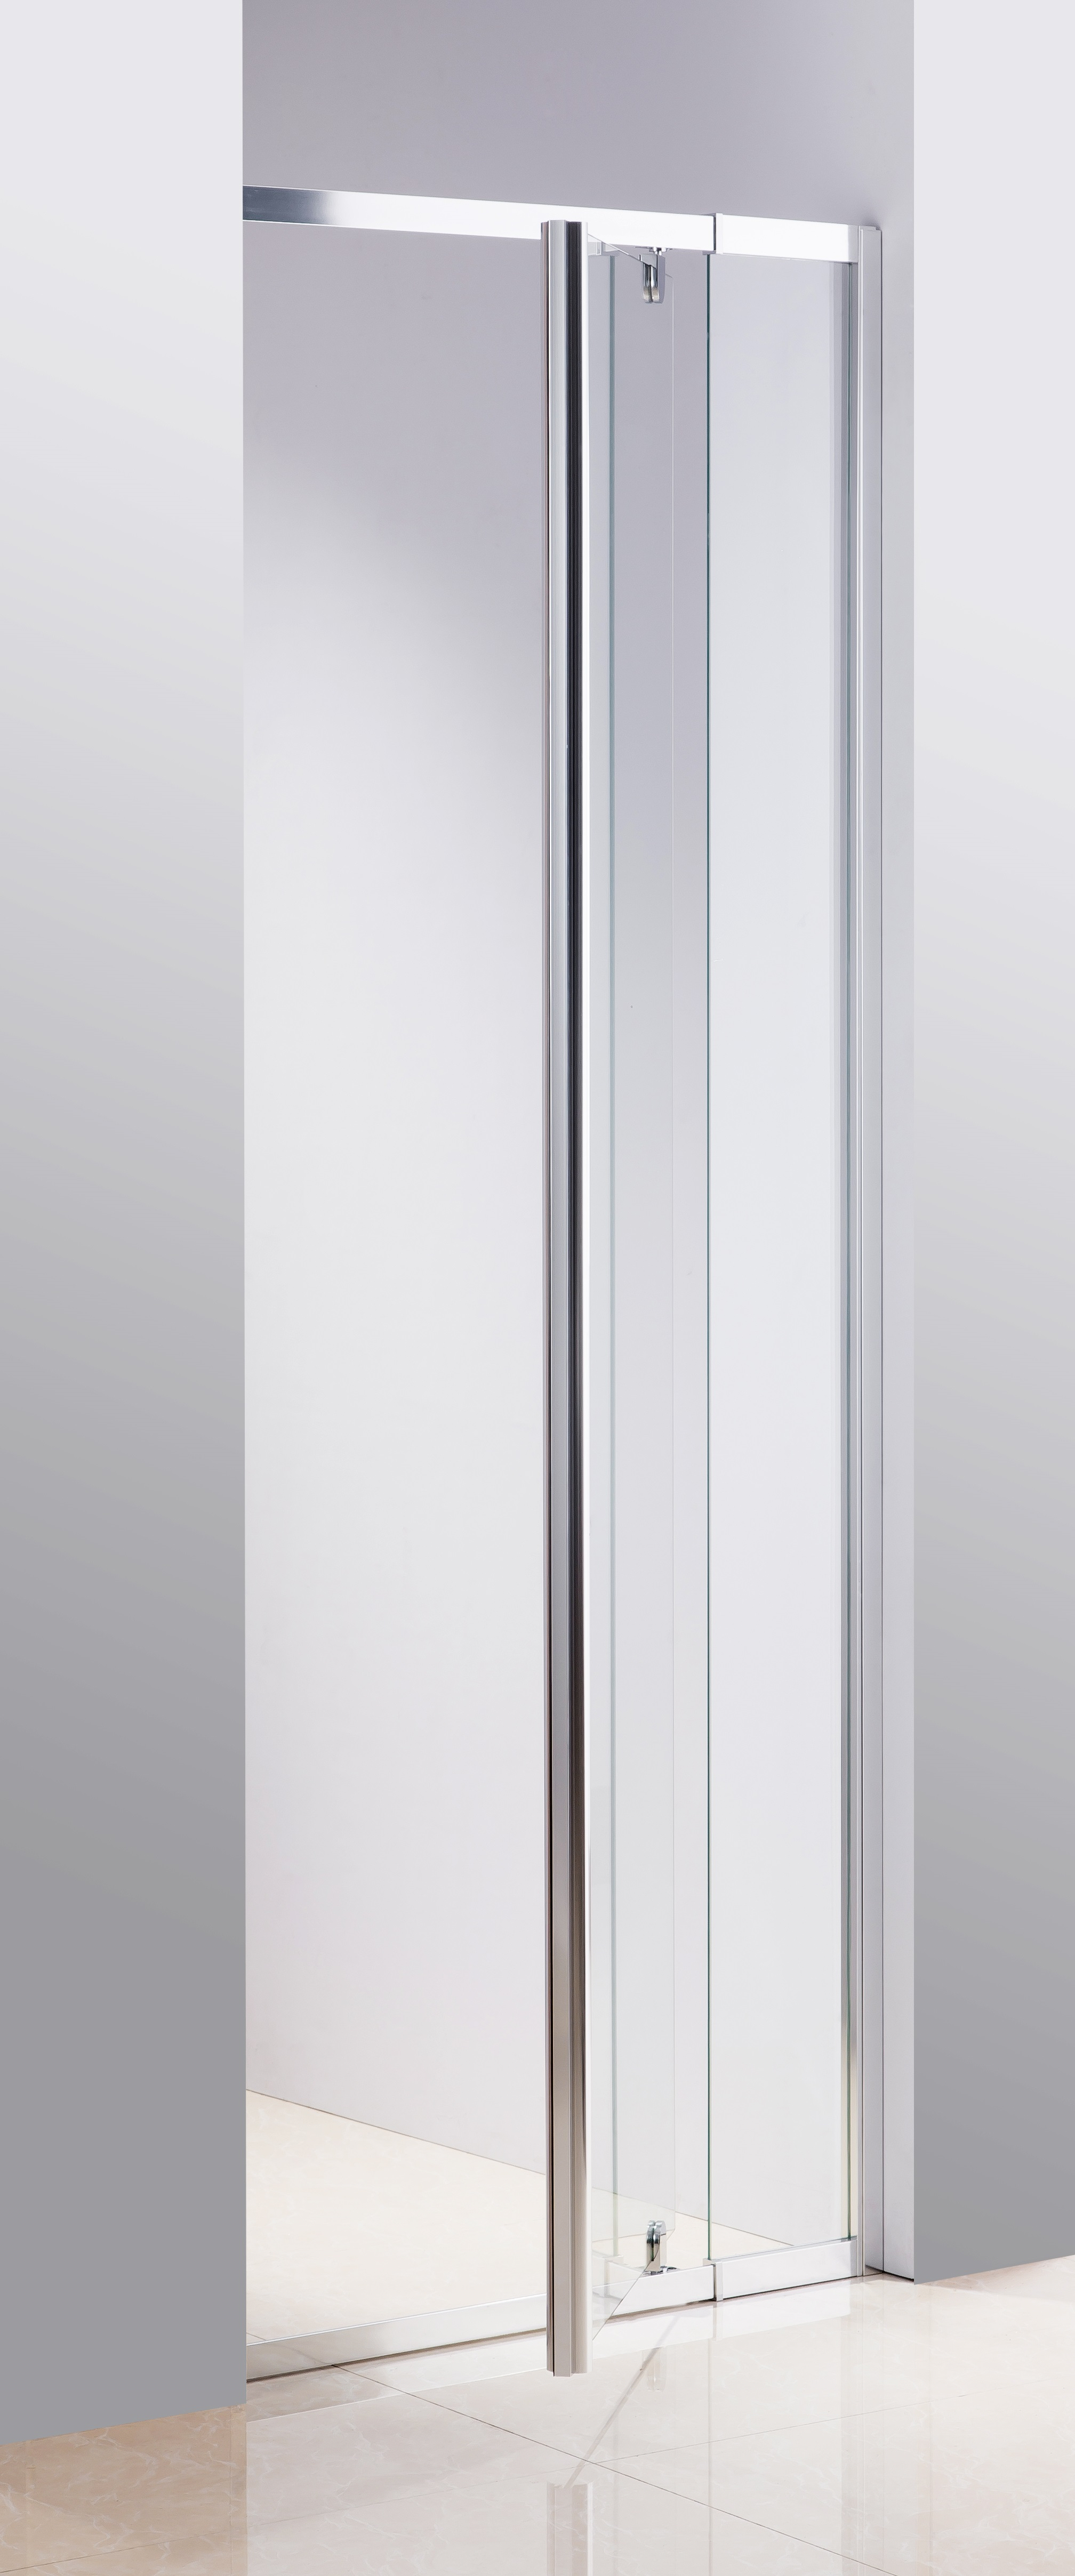 820-900 Finger Pull Wall to Wall Shower Screen By Della Francesca  Z2680